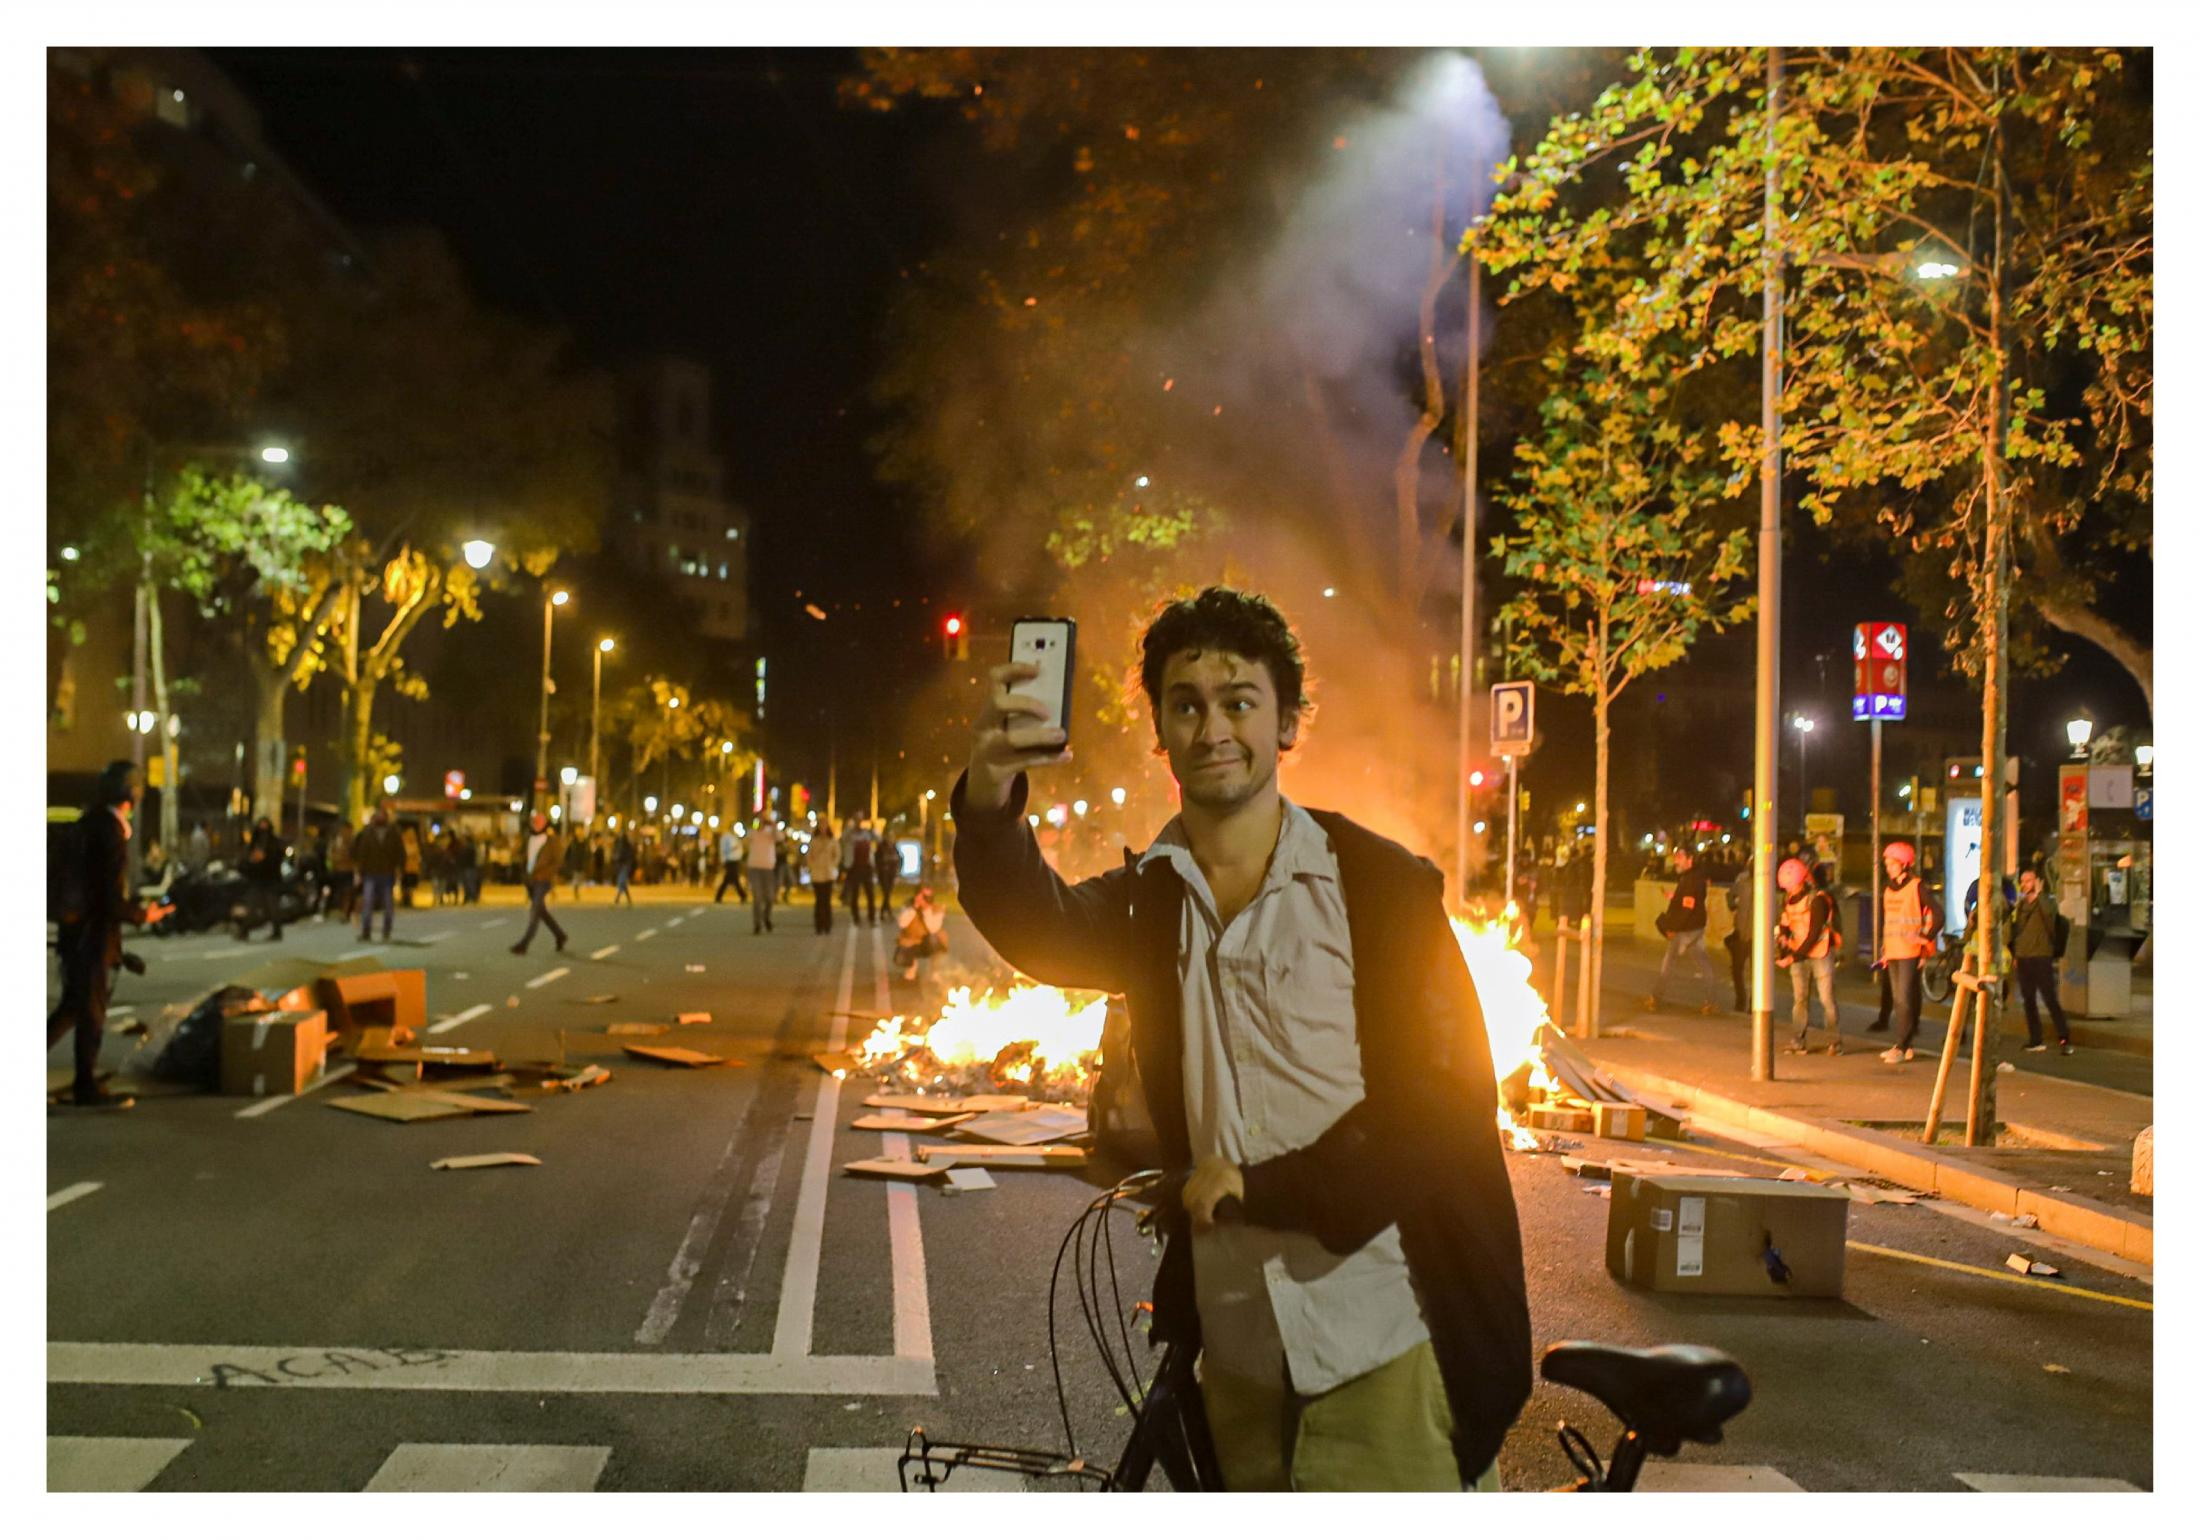 A young man takes a selfie while the center of Barcelona was tense, at various points of Passeig de Gràcia, Pau Claris and Diagonal because of police actions to deal with the burning of some containers and the creation of barricades to contain the police advance. The riots in Barcelona have left significant damage to street furniture. Fomento Ministry has put them at 7 million euros. October 2019, Barcelona, Spain.